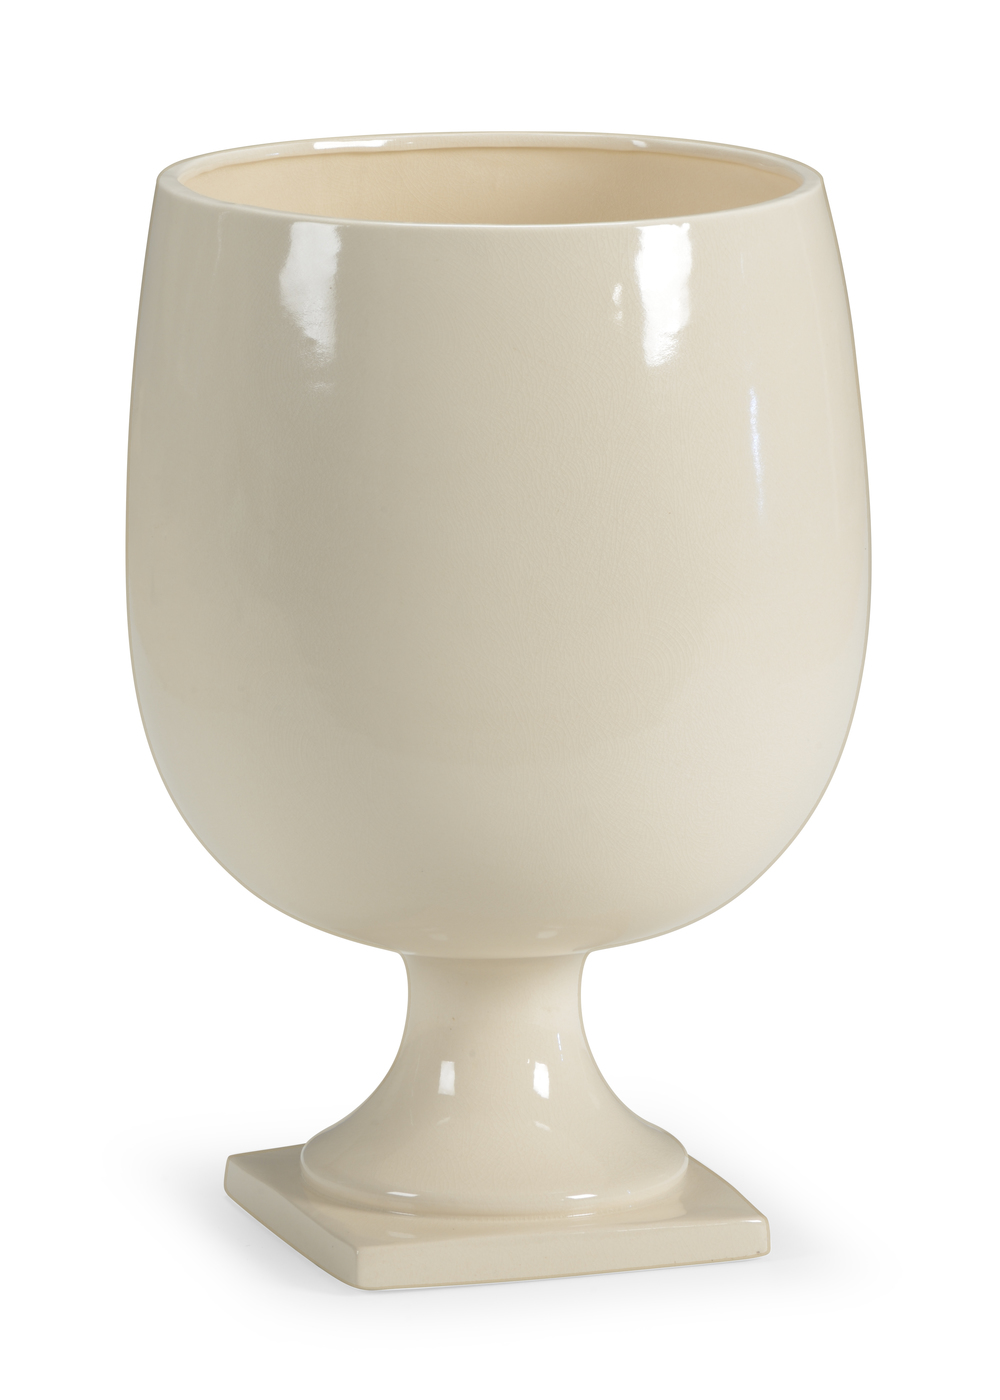 Chelsea House - Lancaster Vase in Cream